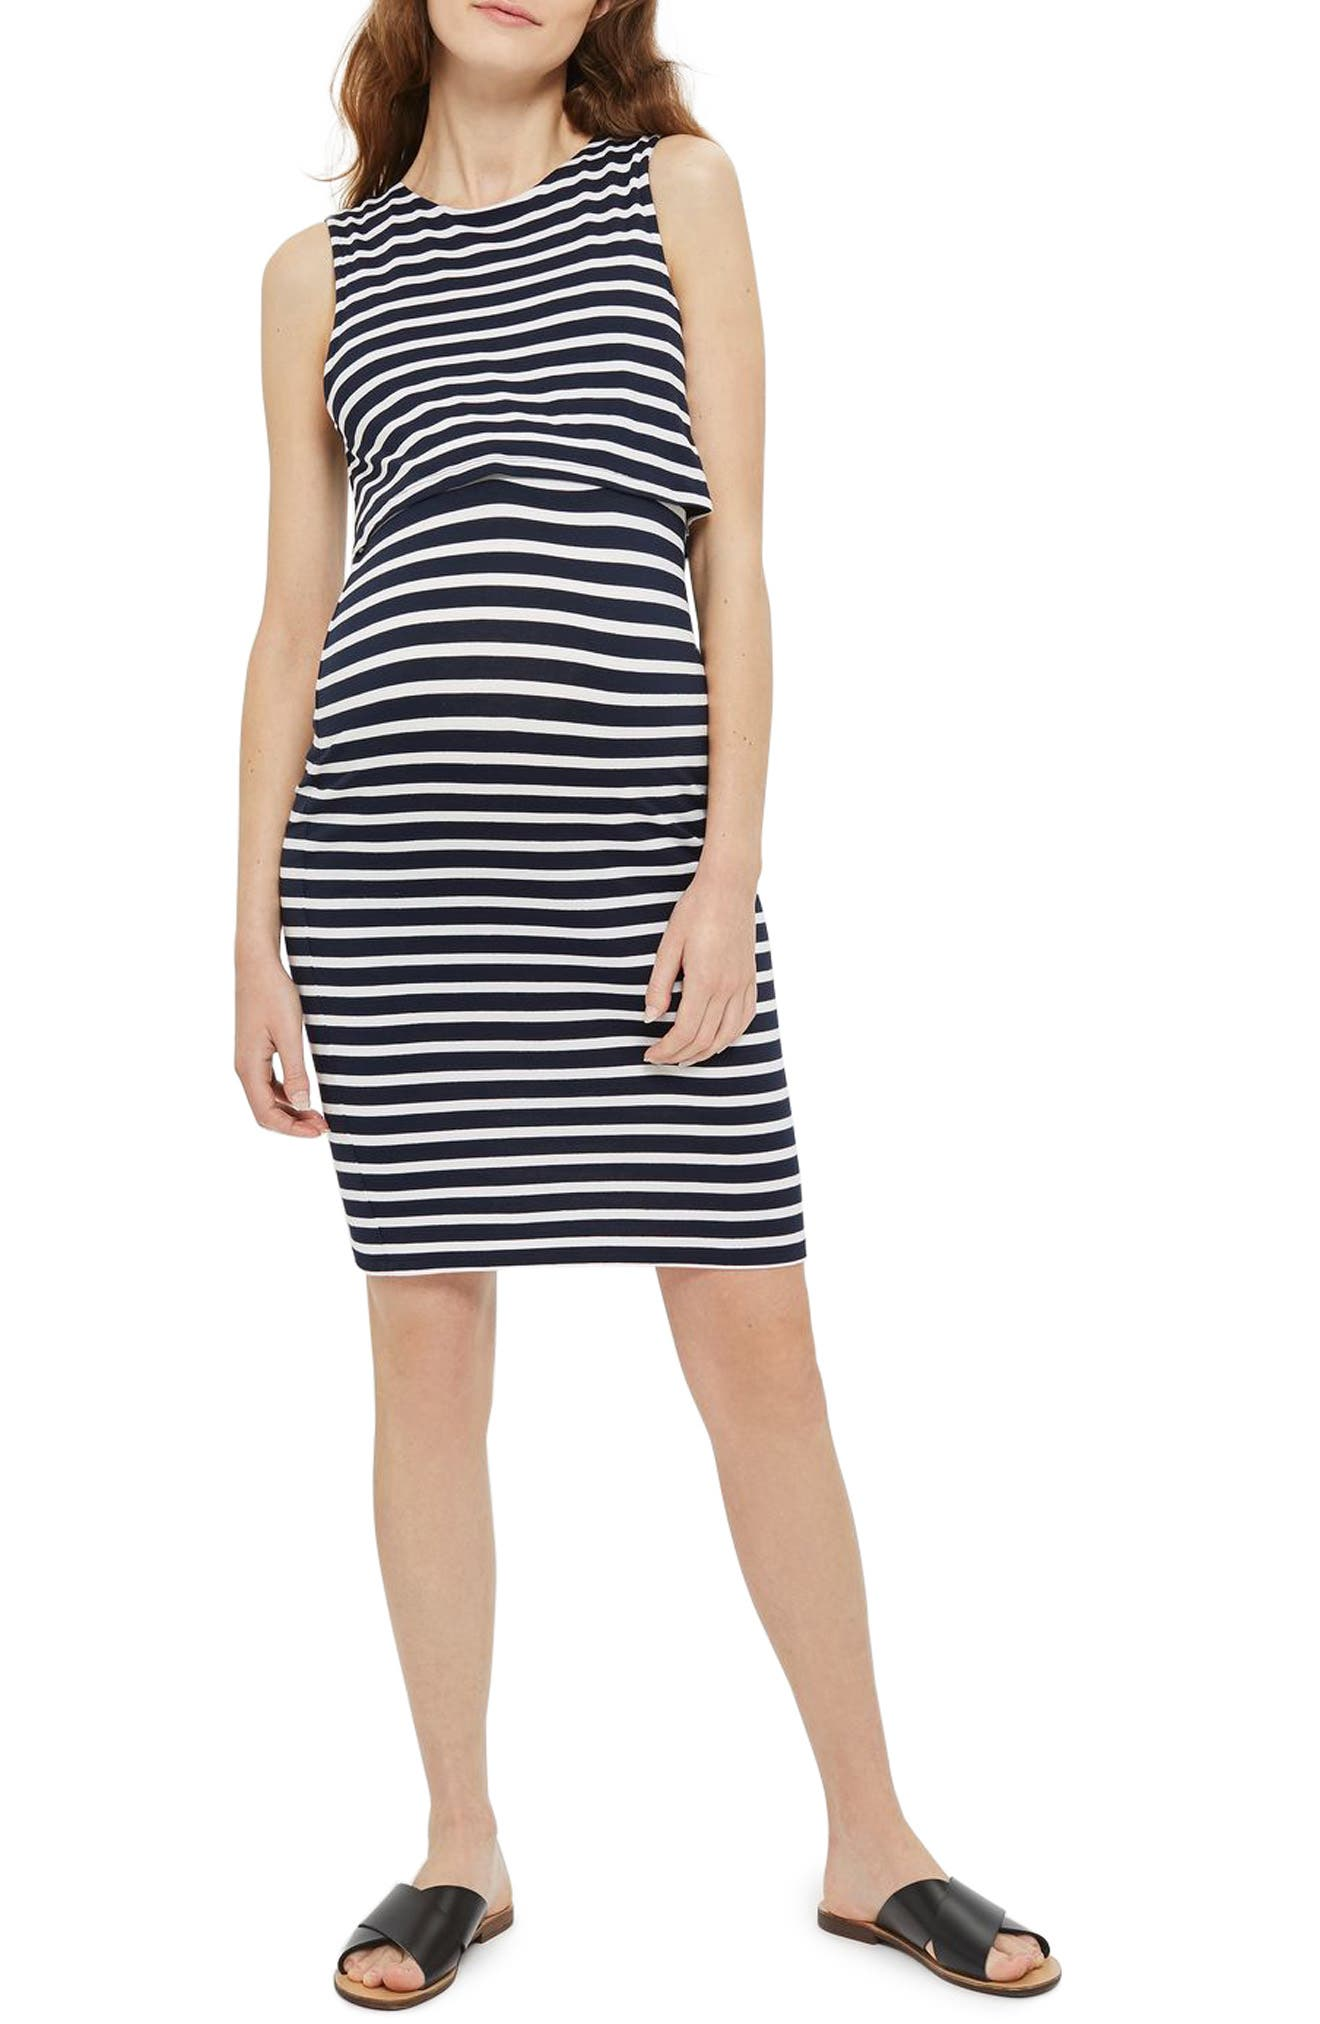 Topshop Stripe Maternity/Nursing Dress